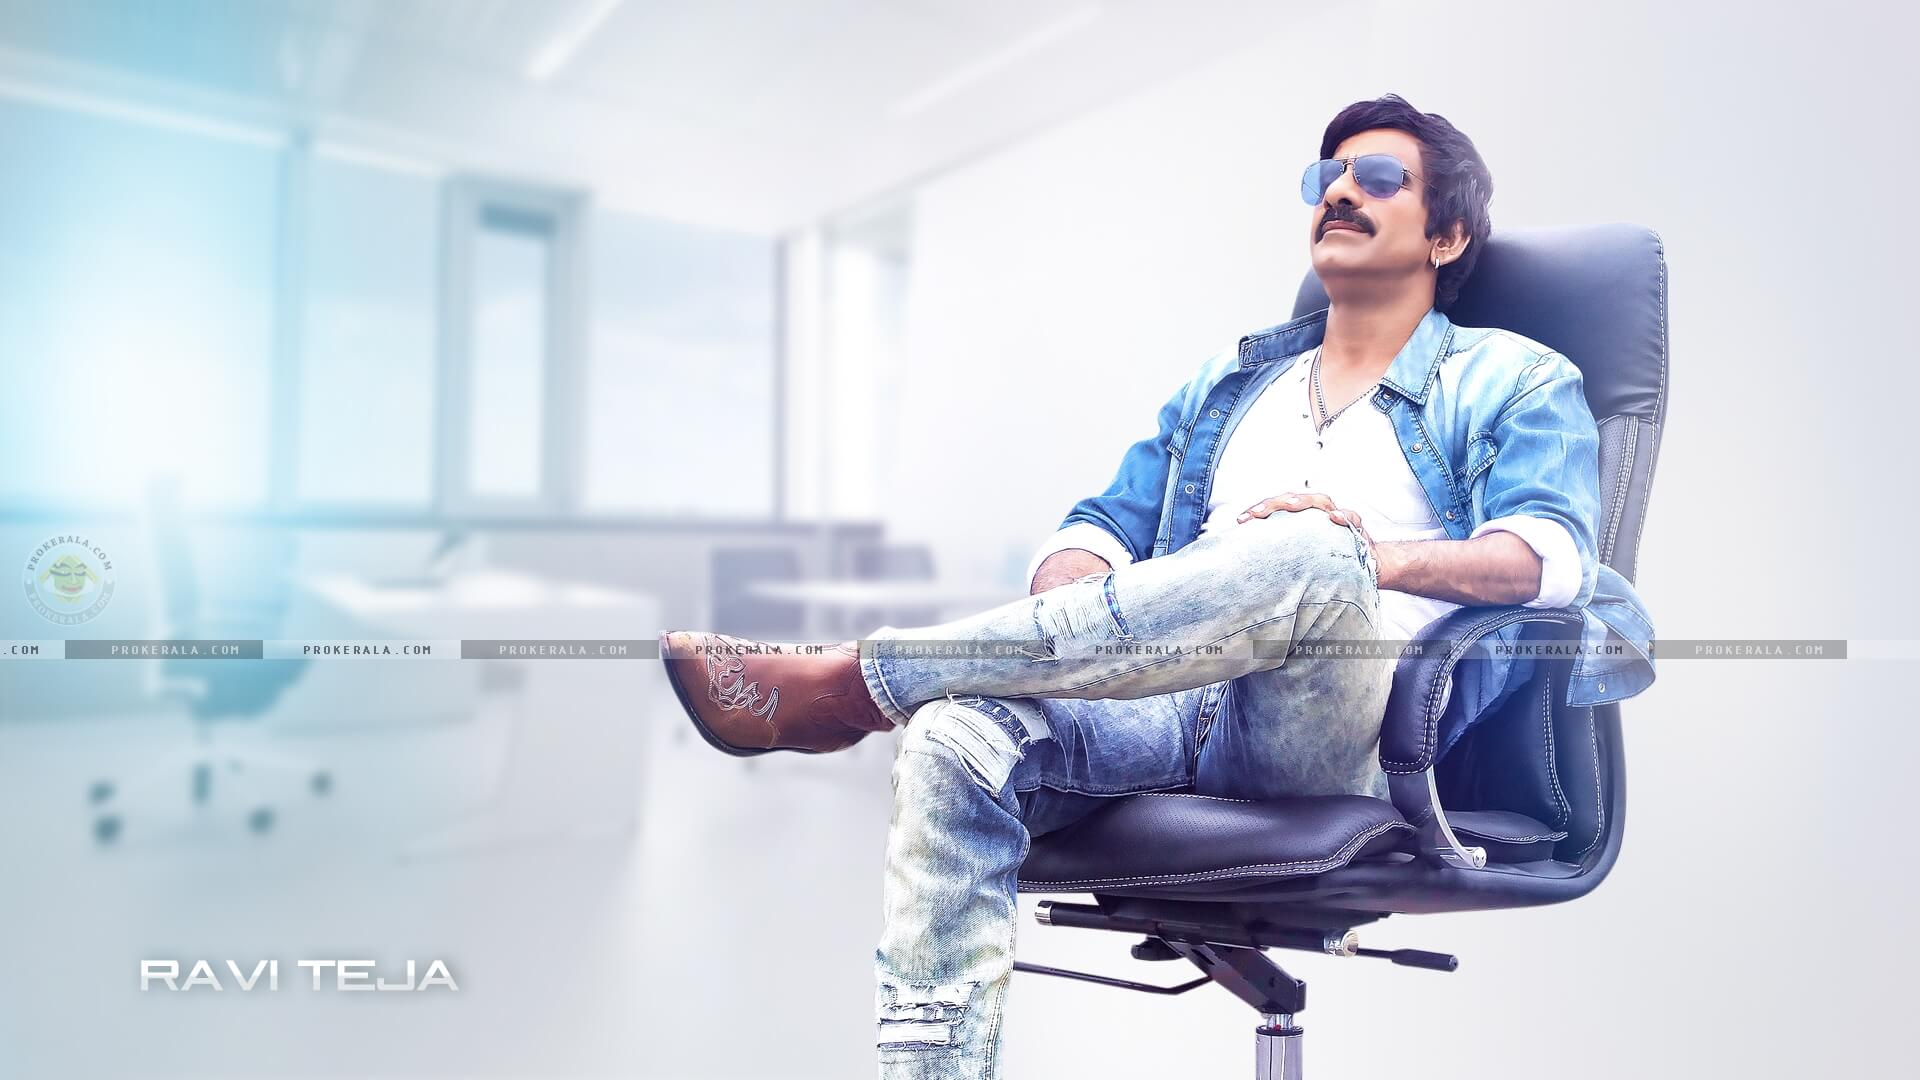 Ravi Teja Movie, Photos(images), Date Of Birth, Family, Brother, Height, Biography, Net Worth, Age, Wife, Details, Education, Instagram, Twitter, Wiki, Imdb, Facebook, Hairstyle, Youtube (6)